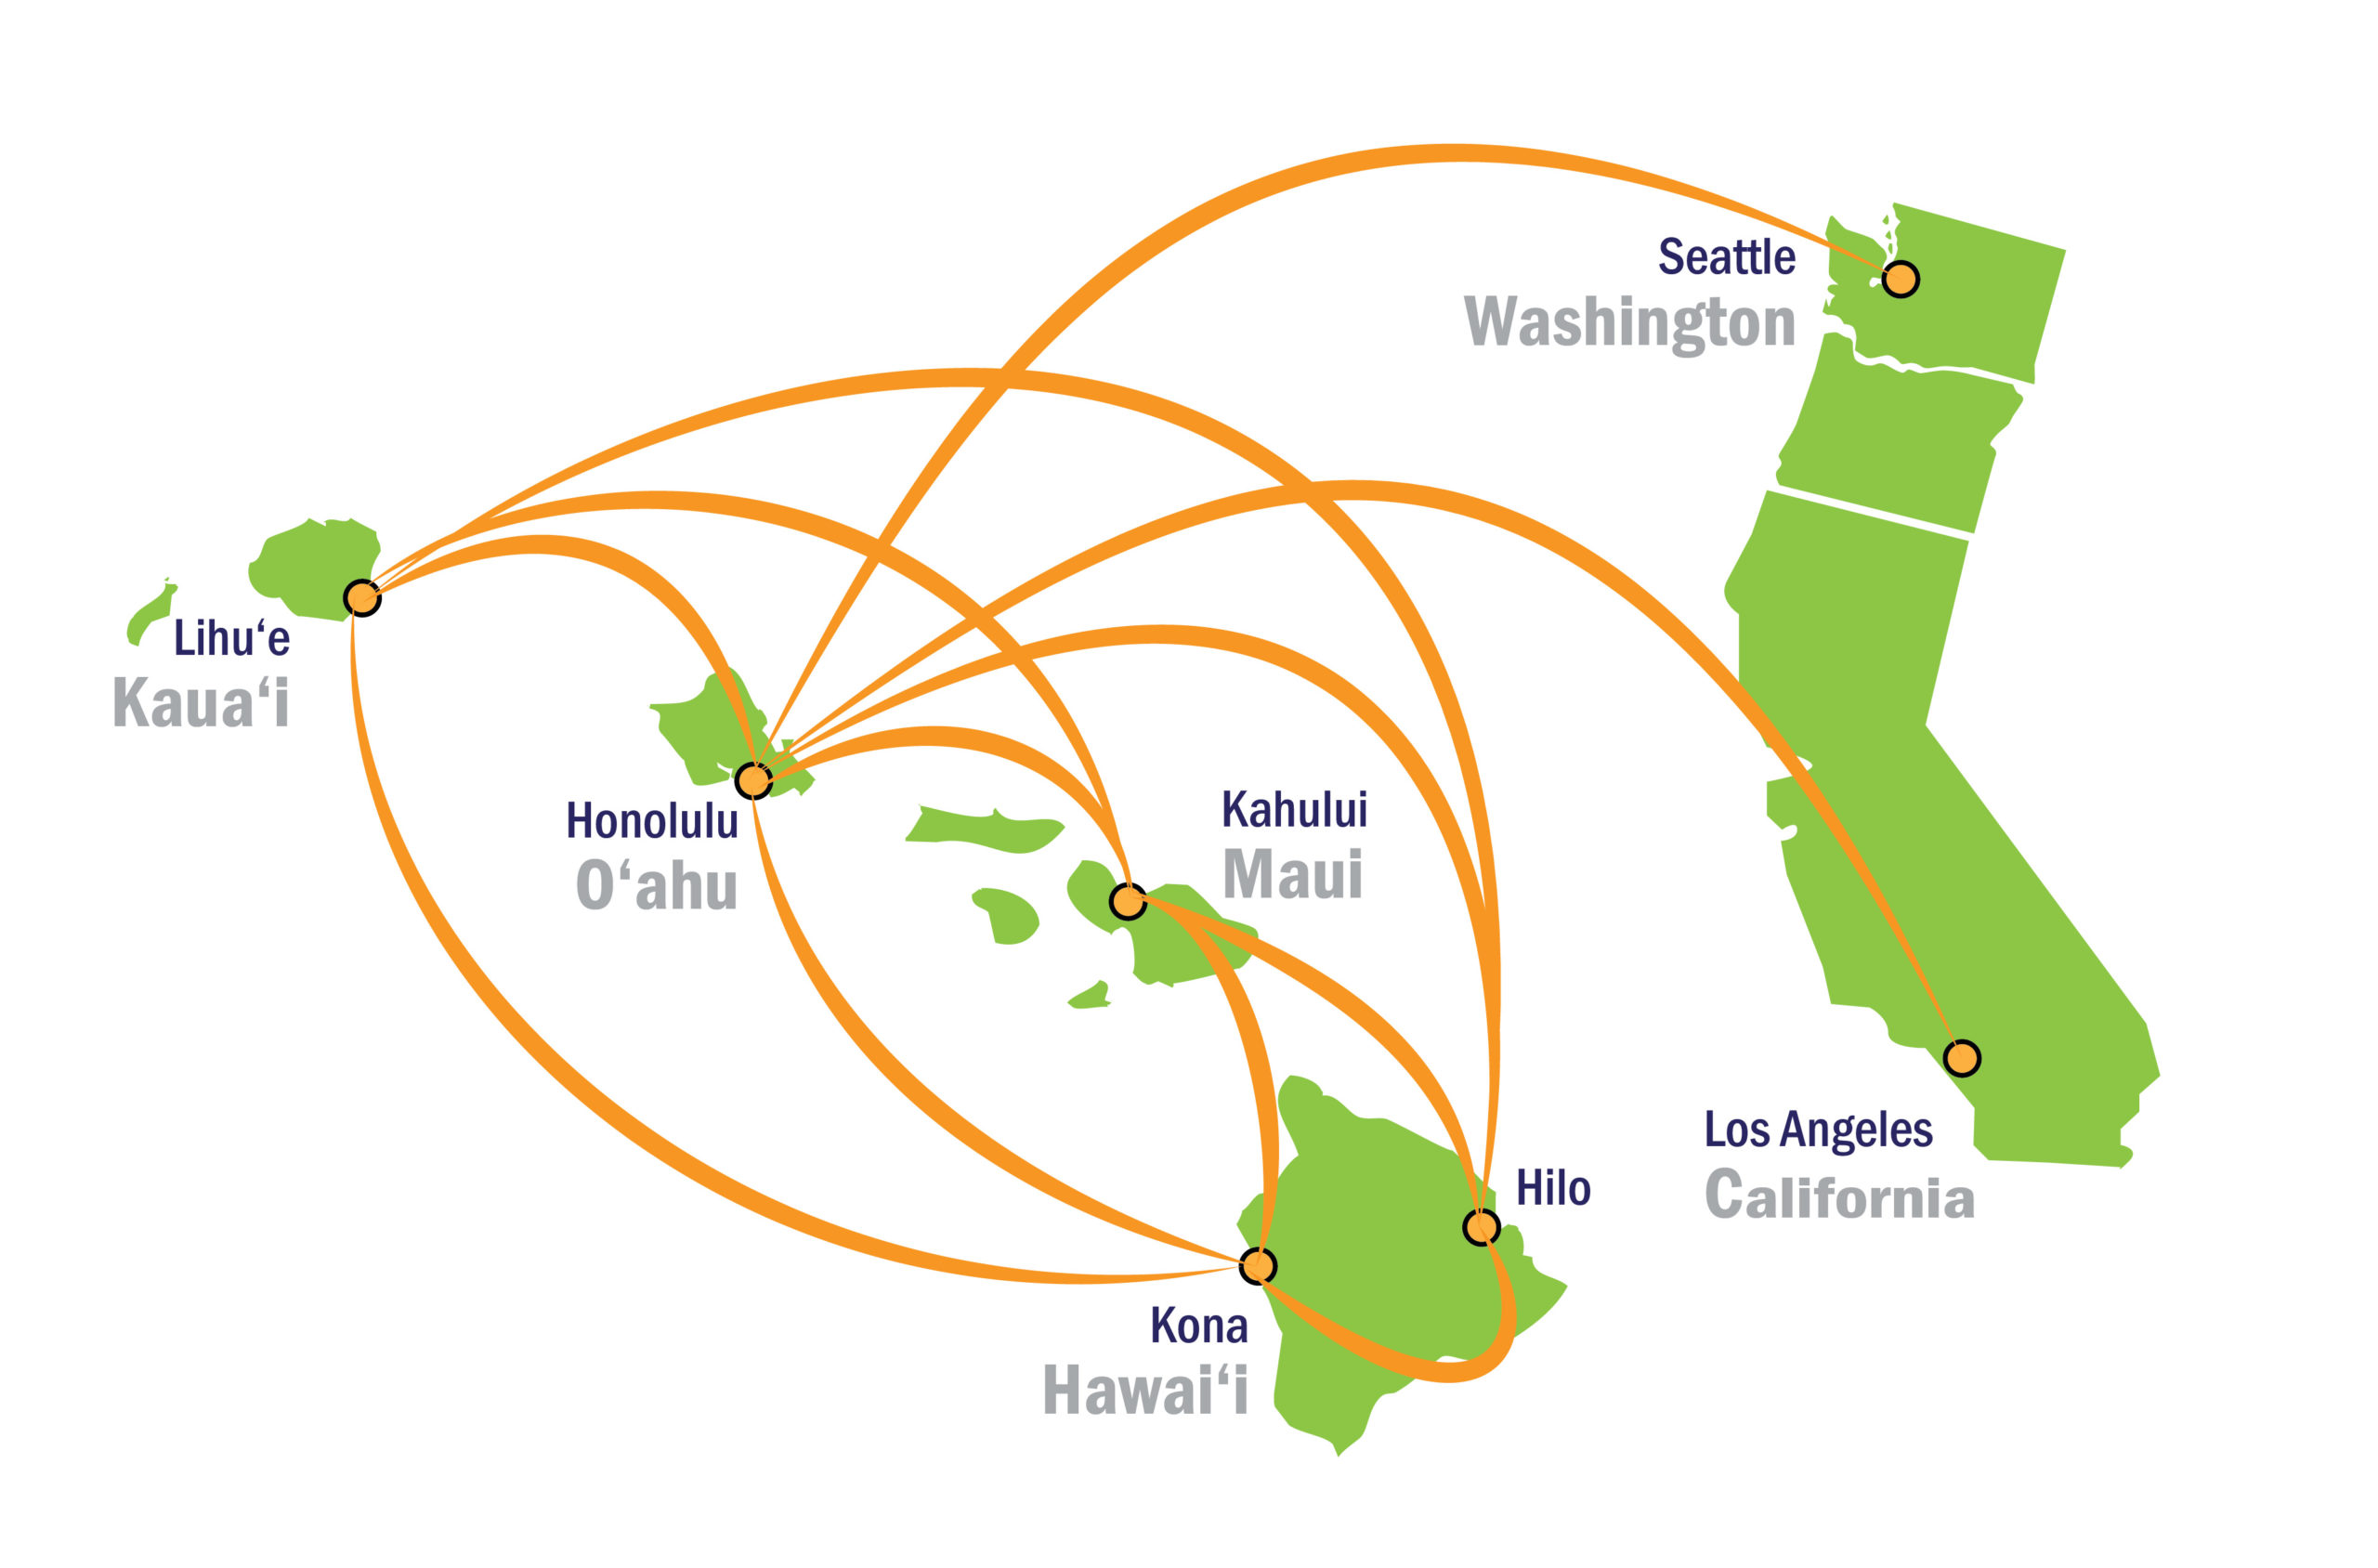 Shipping between interisland stations connects through HNL.